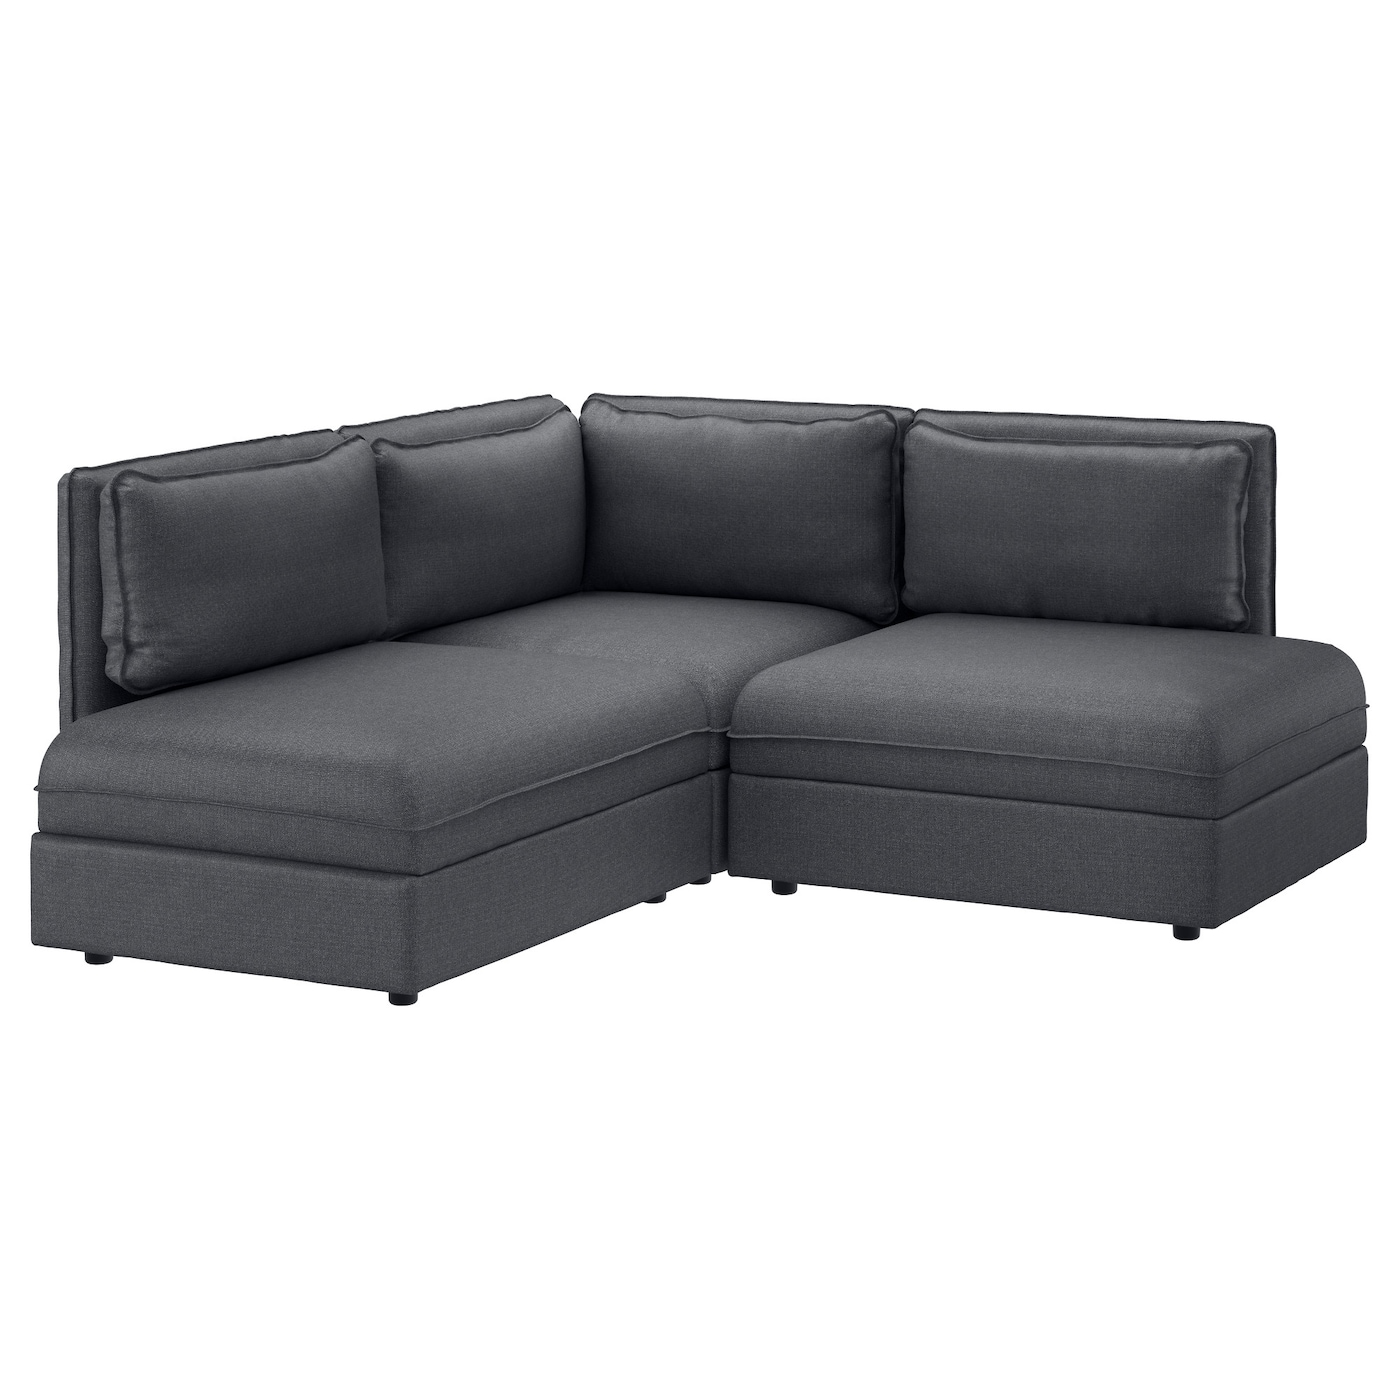 Vallentuna 3 seat corner sofa hillared dark grey ikea for Sofas rinconeras ikea